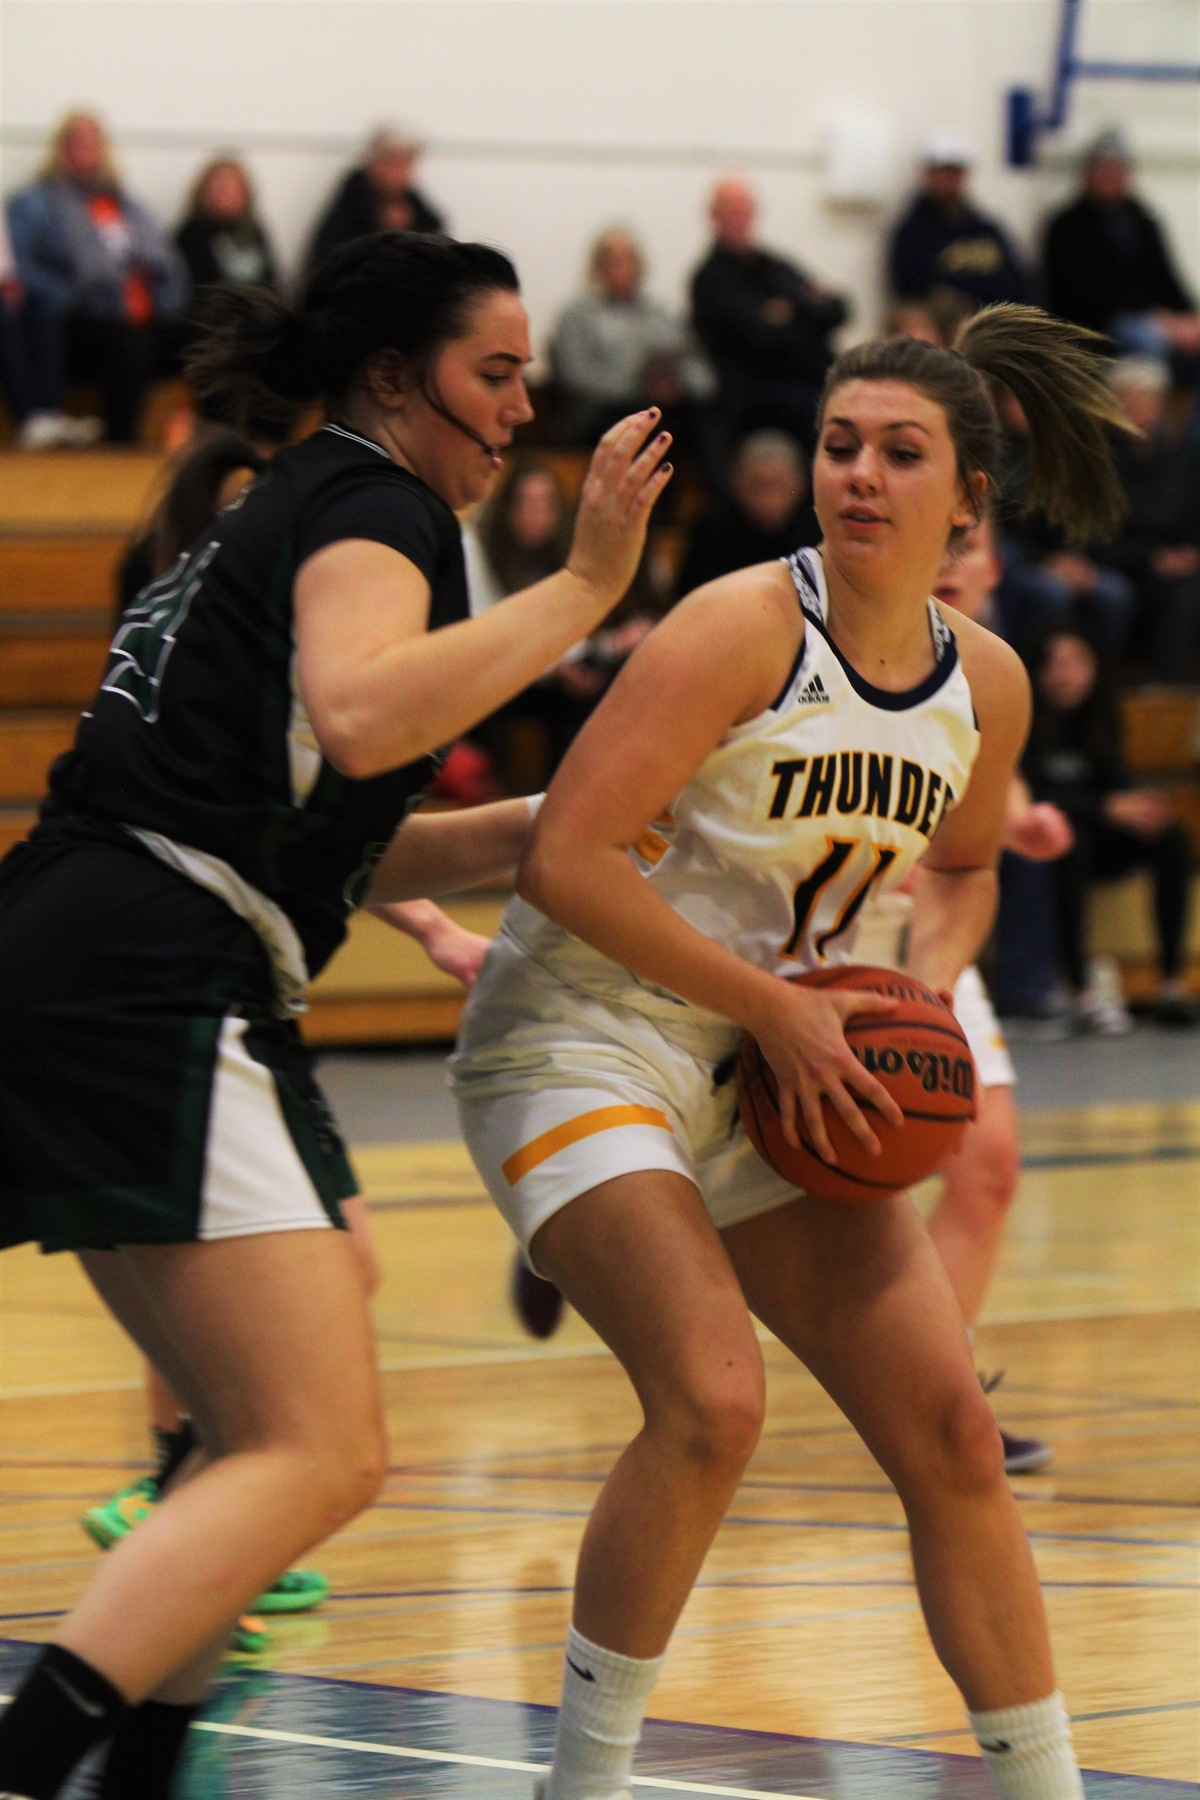 Thunder fall to the Rustlers in Saturday night action